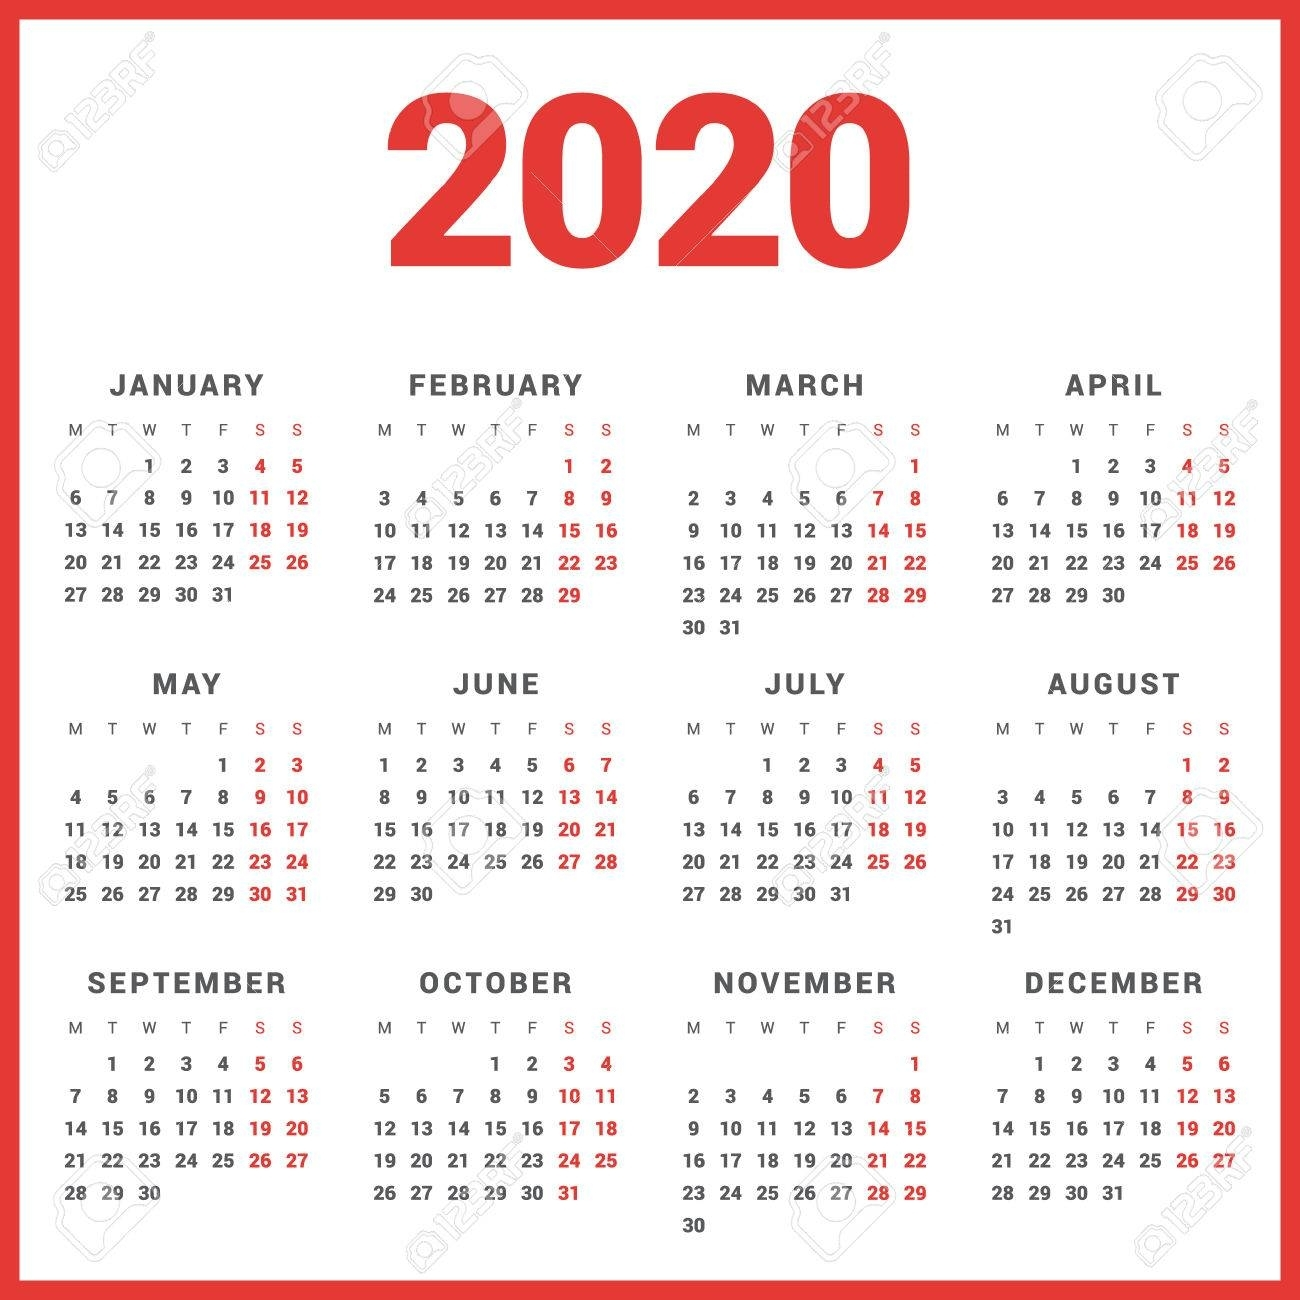 Monday Start Calendar 2020 - Colona.rsd7 within 2020 Calendar With Monday Start